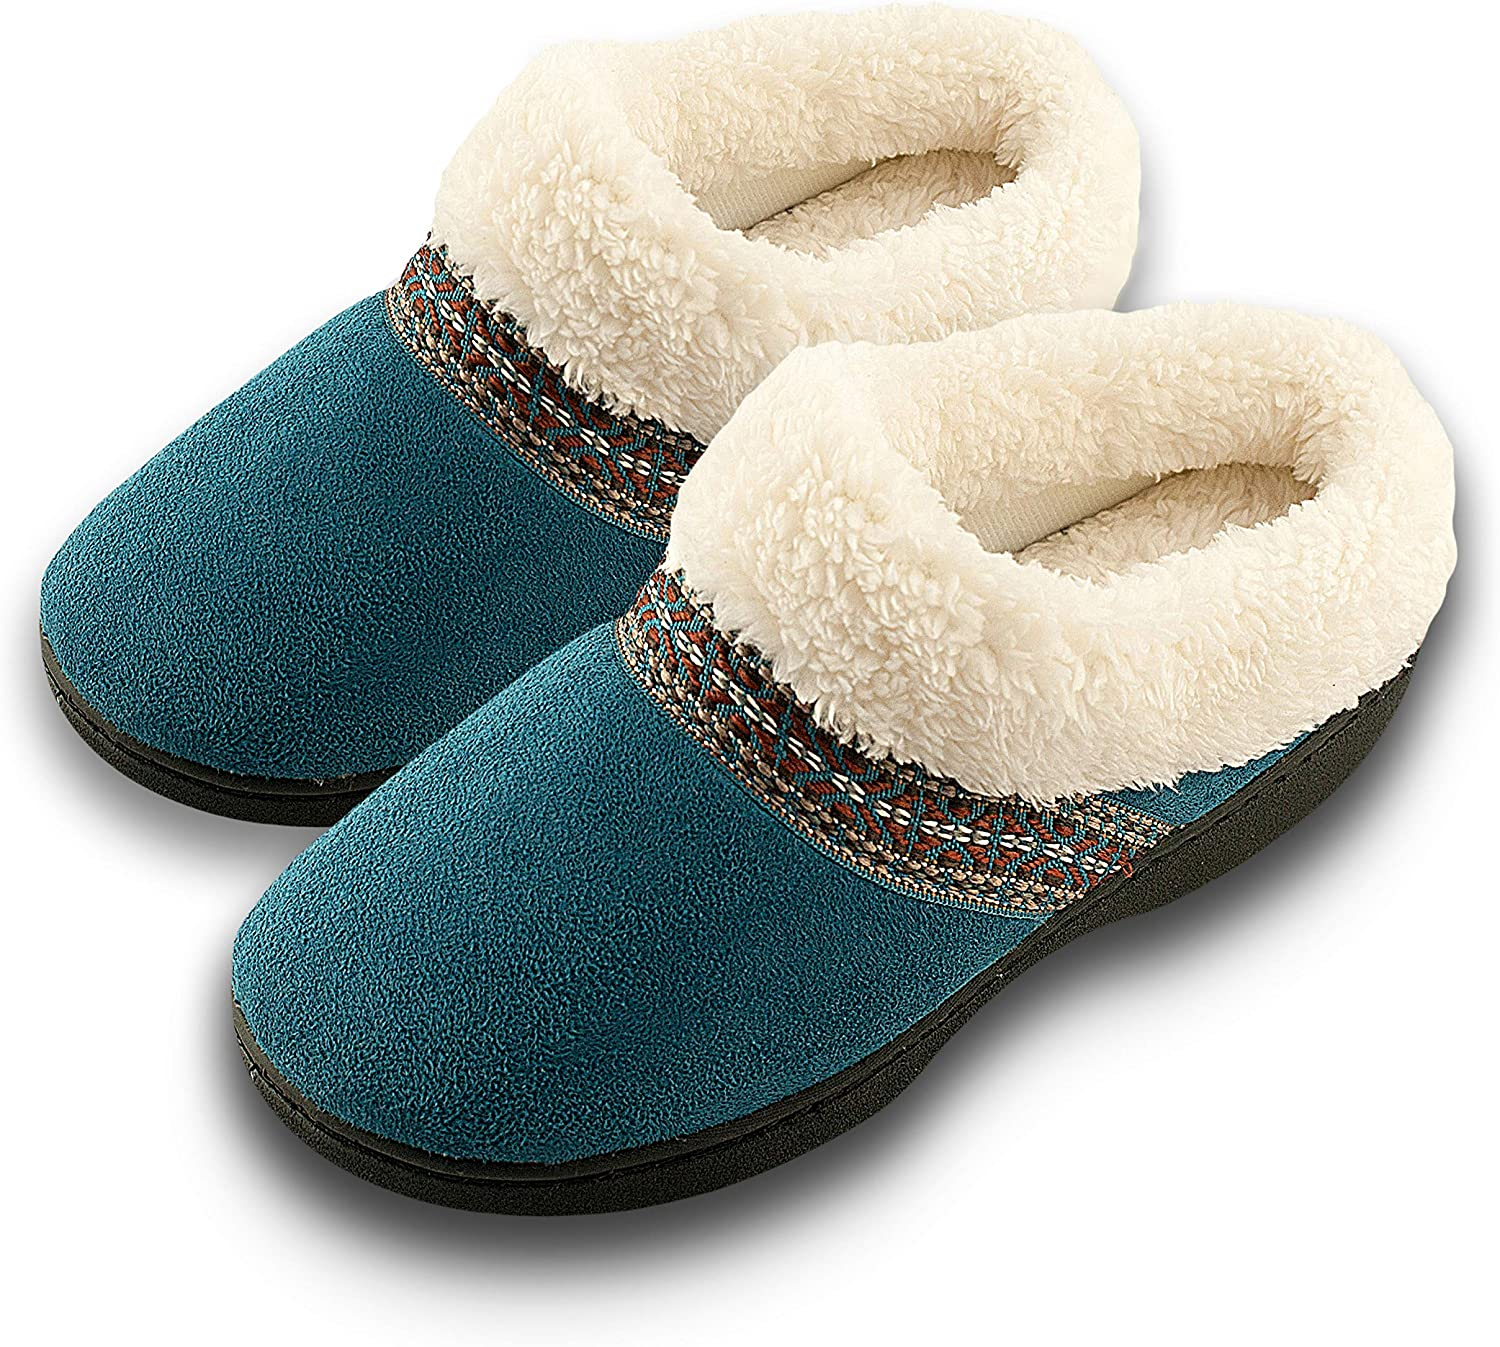 Roxoni Women's Winter Slippers; A Ladies Comfort and Cozy Clog Great for House and Outdoor Teal